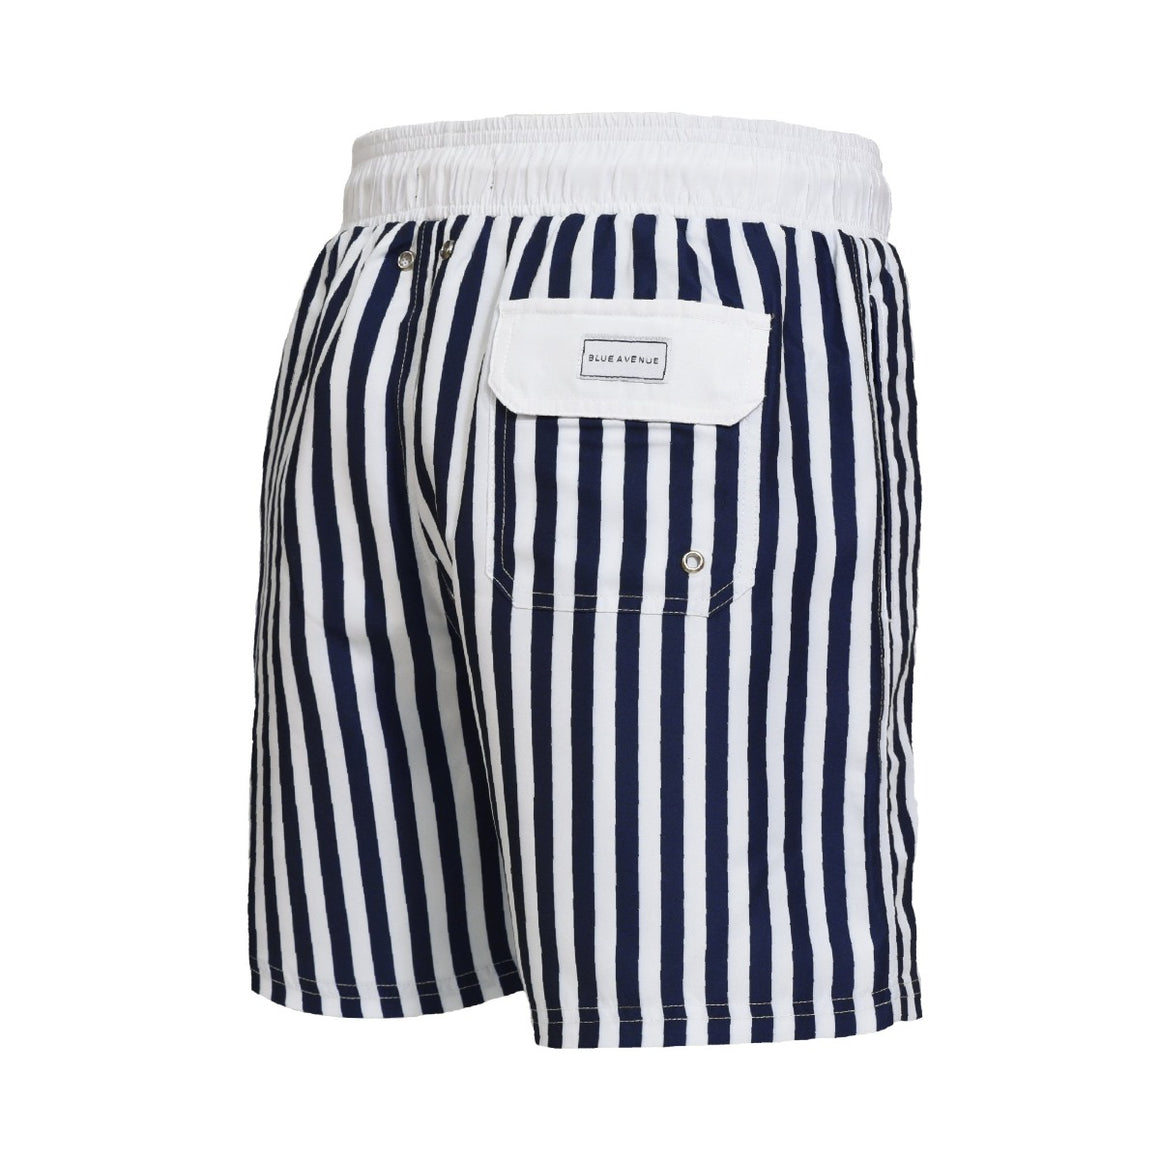 Classic Saint-Tropez striped blue and white swim shorts - Blue Avenue